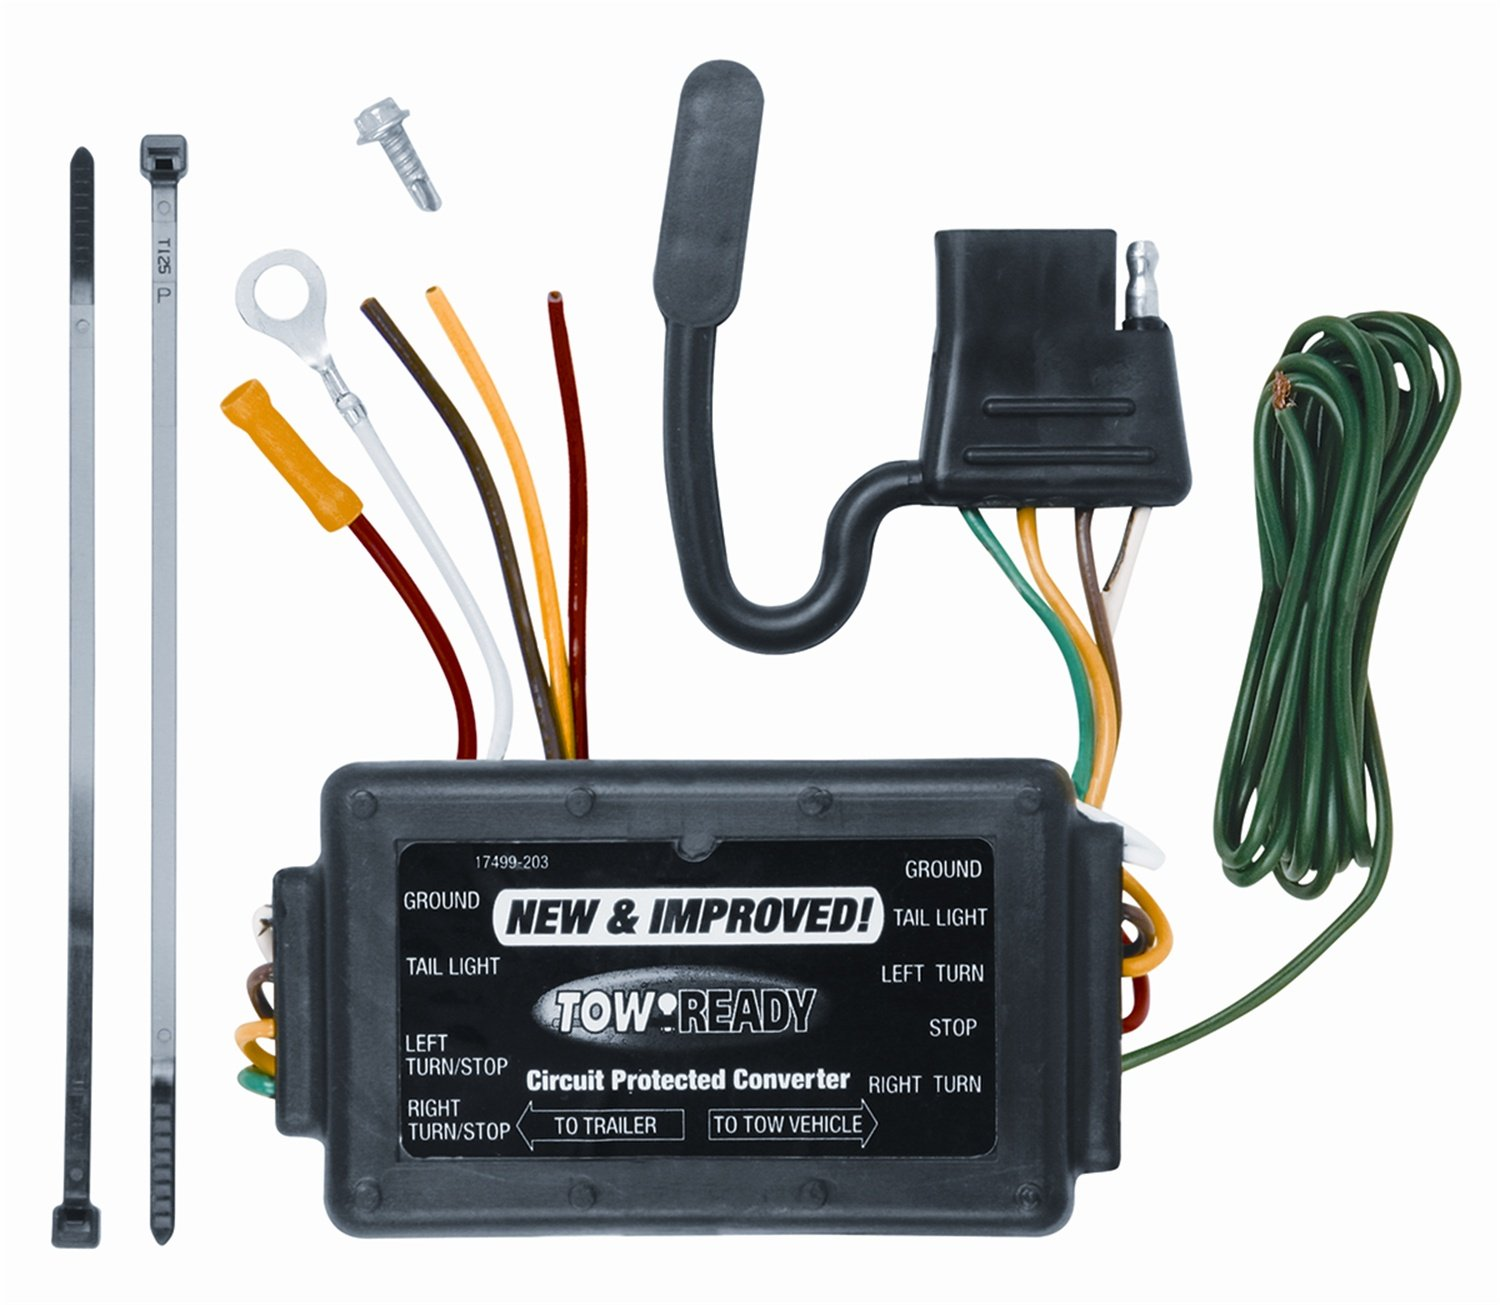 Tow Ready 119176 Modulite Protector With Integrated Wiring Trailer Lights Circuit Protection Automotive